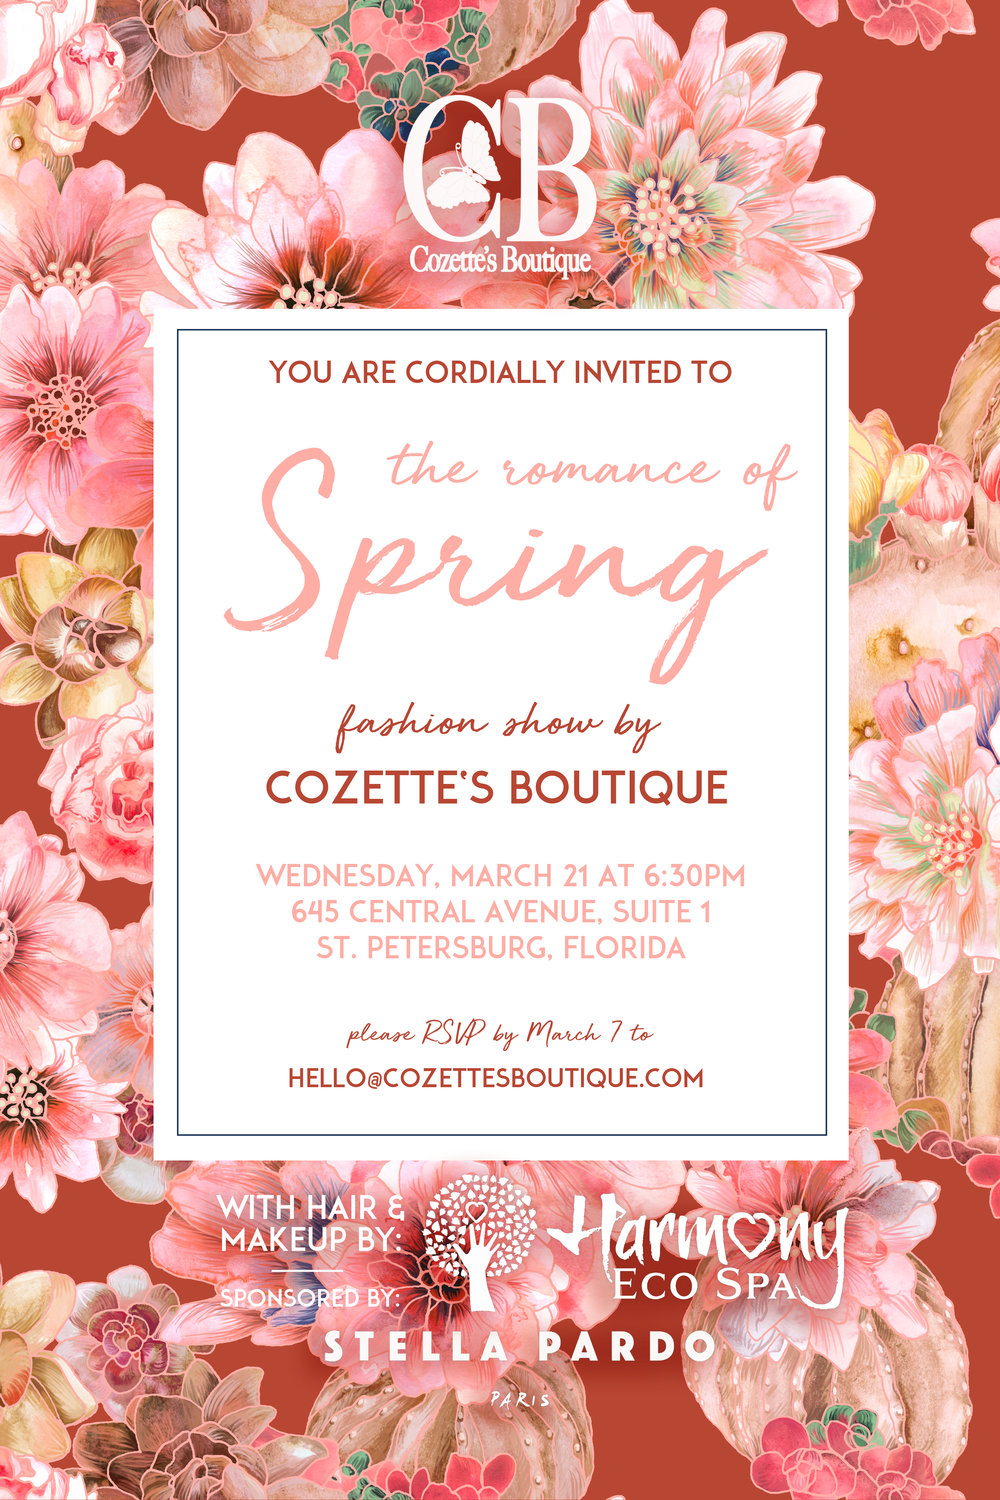 Fashion Show invitation for Cozette's Boutique, featuring a Stella Pardo original pattern and logos from the participating sponsors.